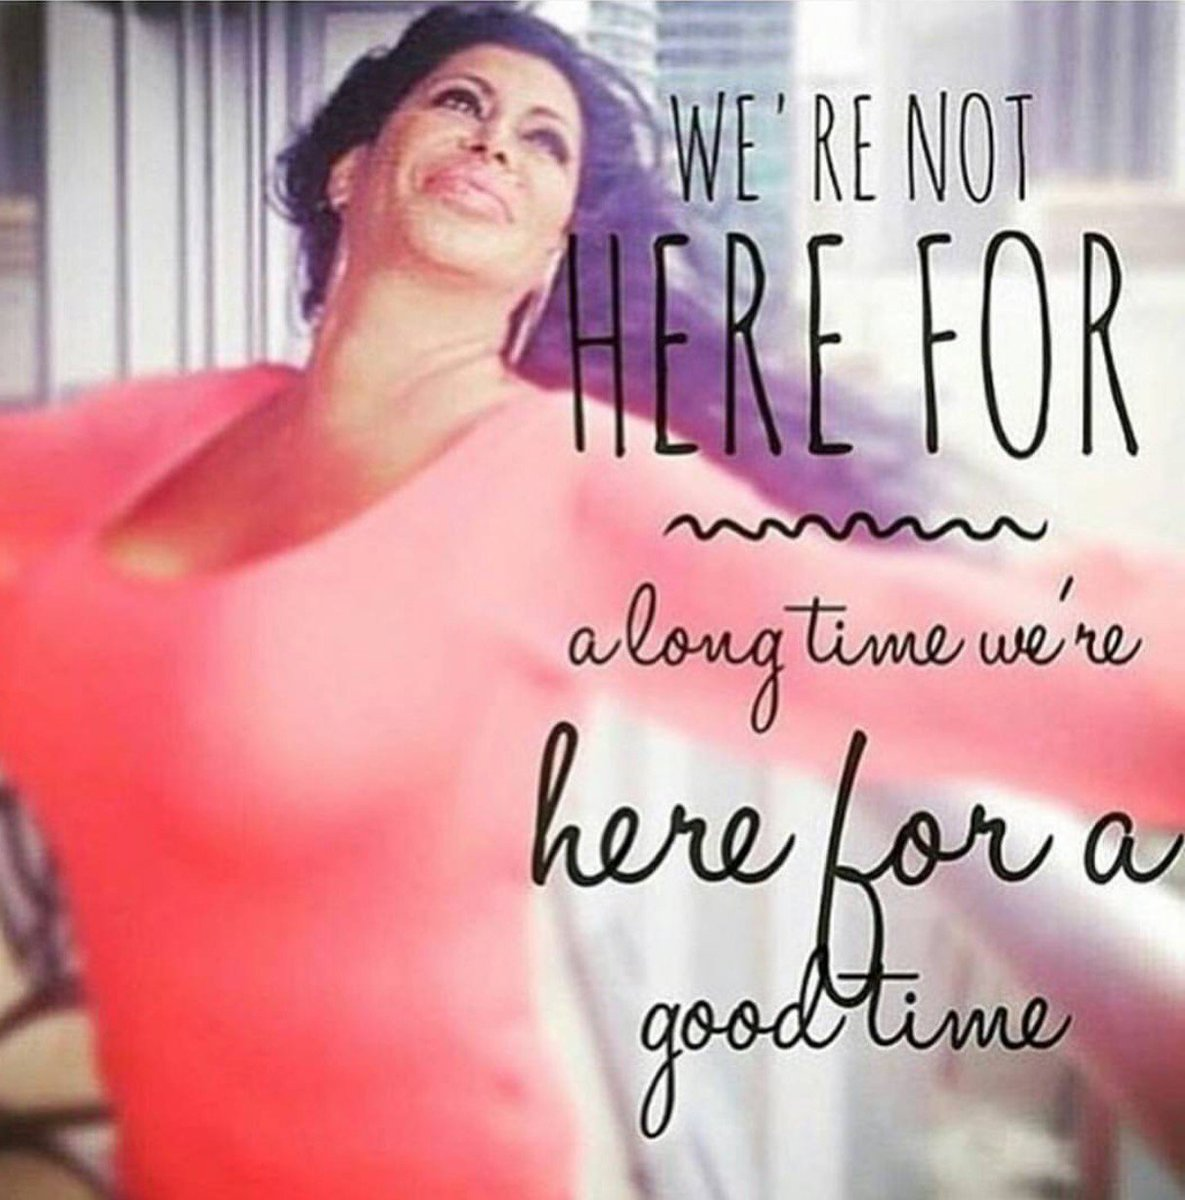 Another life lost to cancer - so sad #RIP #Bigang #lifeisshort #seizetheday #lesson-learned https://t.co/HwMqgNVjgH